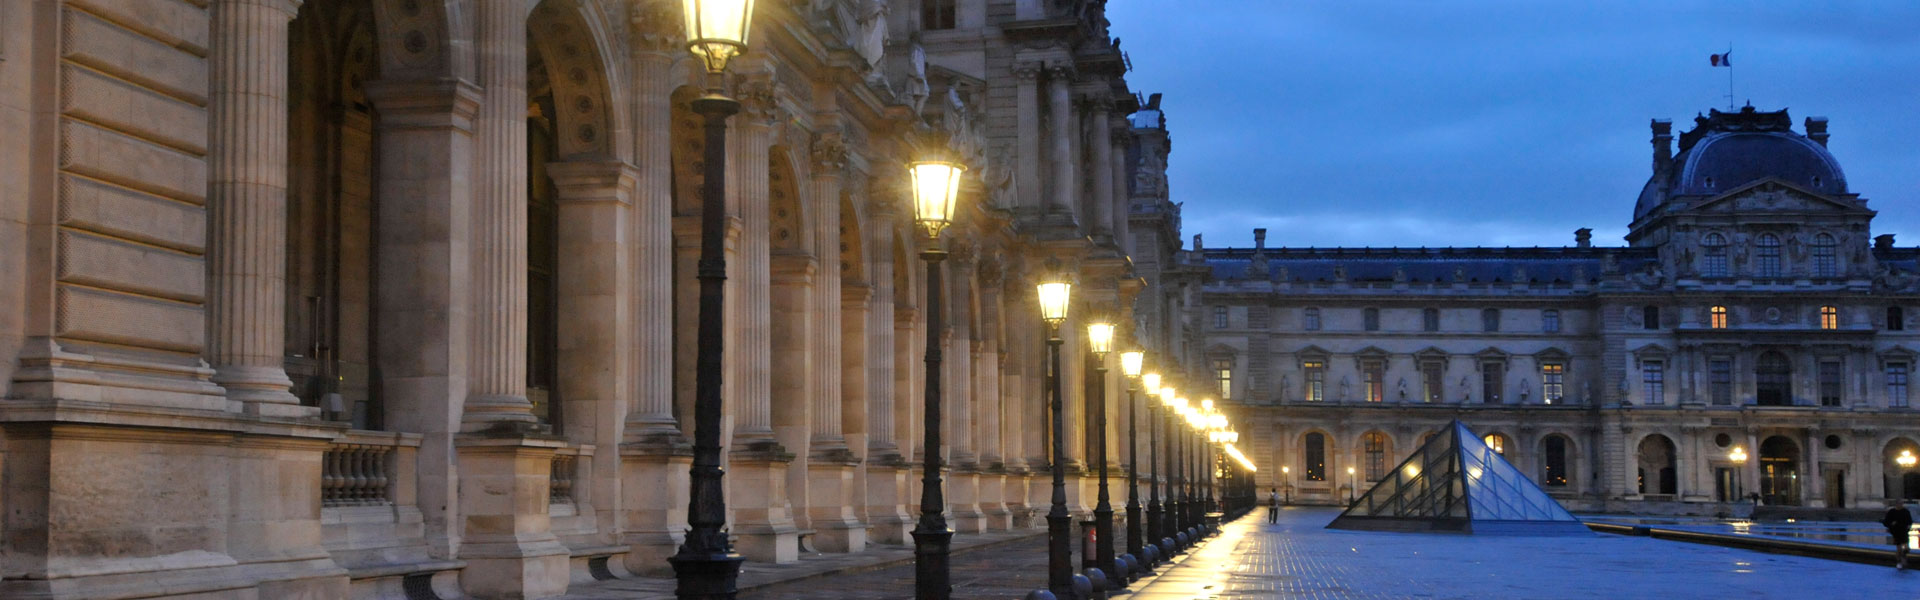 4_louvre-vendome